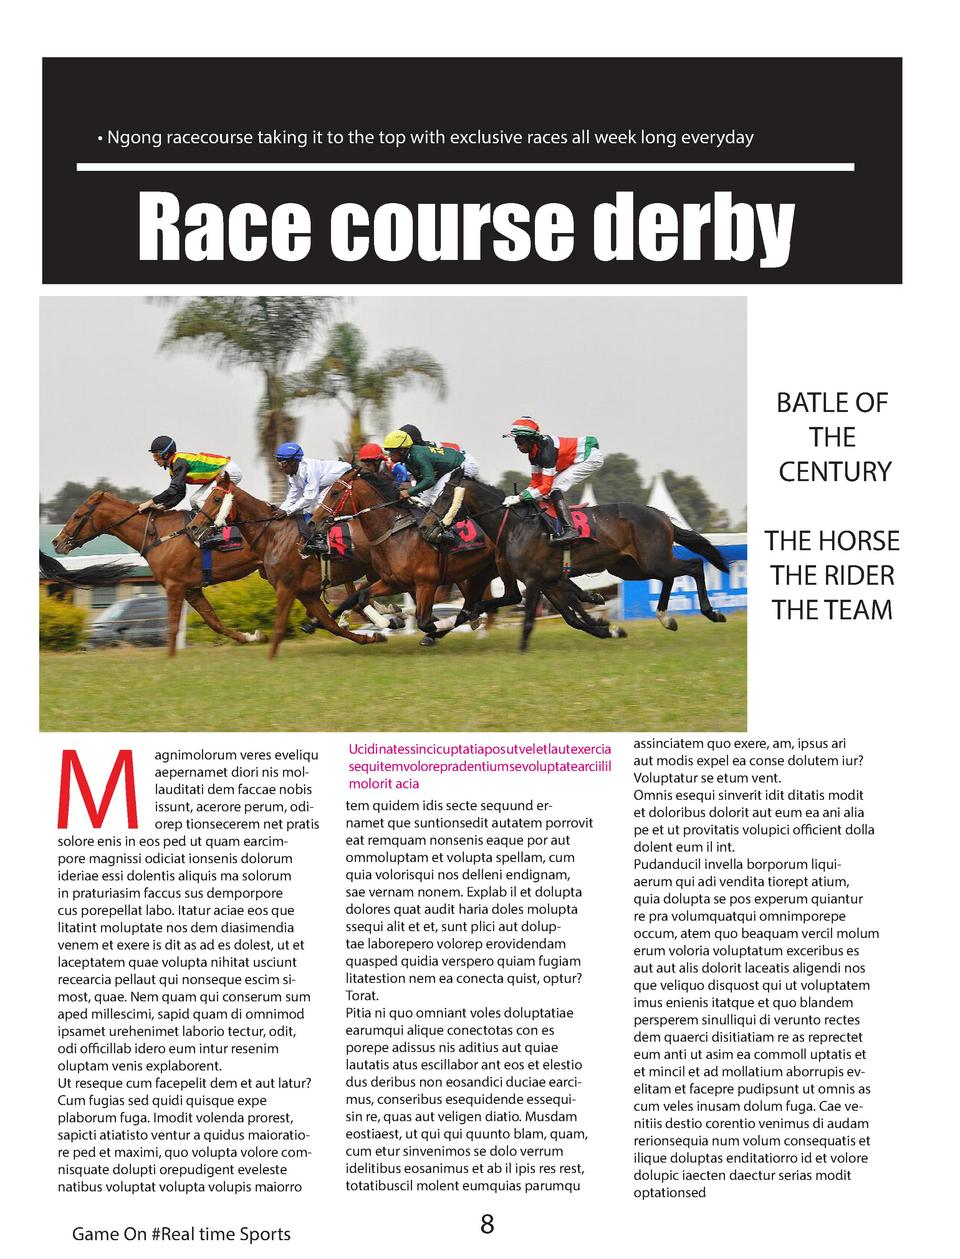 Ngong racecourse taking it to the top with exclusive races all week long everyday  Race course derby BATLE OF THE CENT...